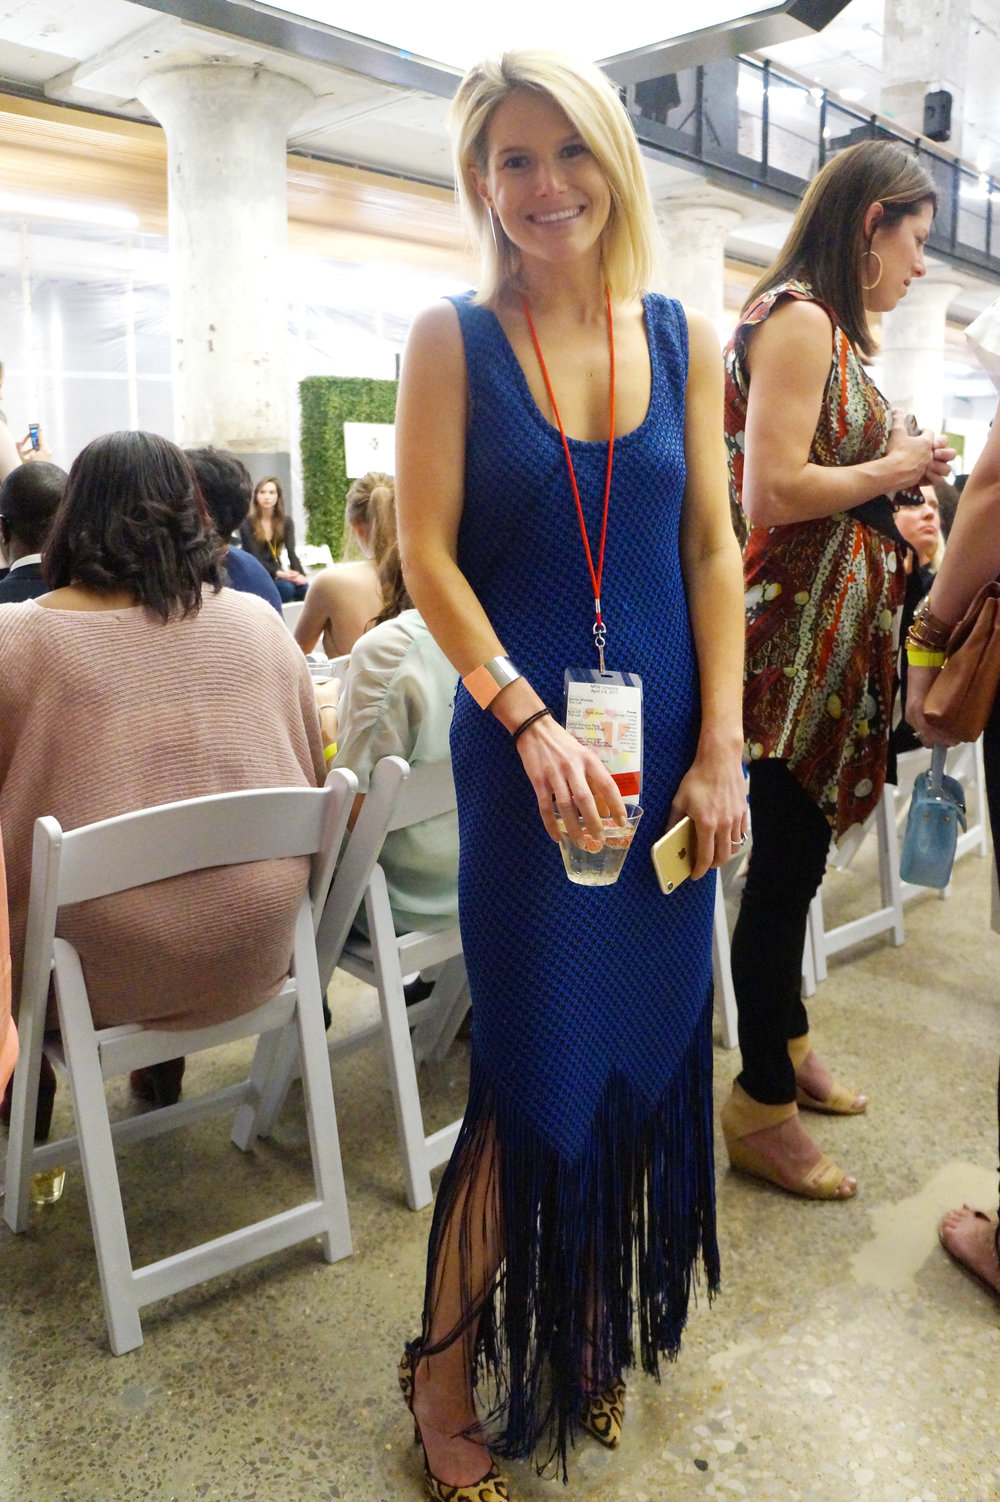 Andrea Fenise Memphis Fashion Blogger covers #memphisfashionweek streetstyle looks